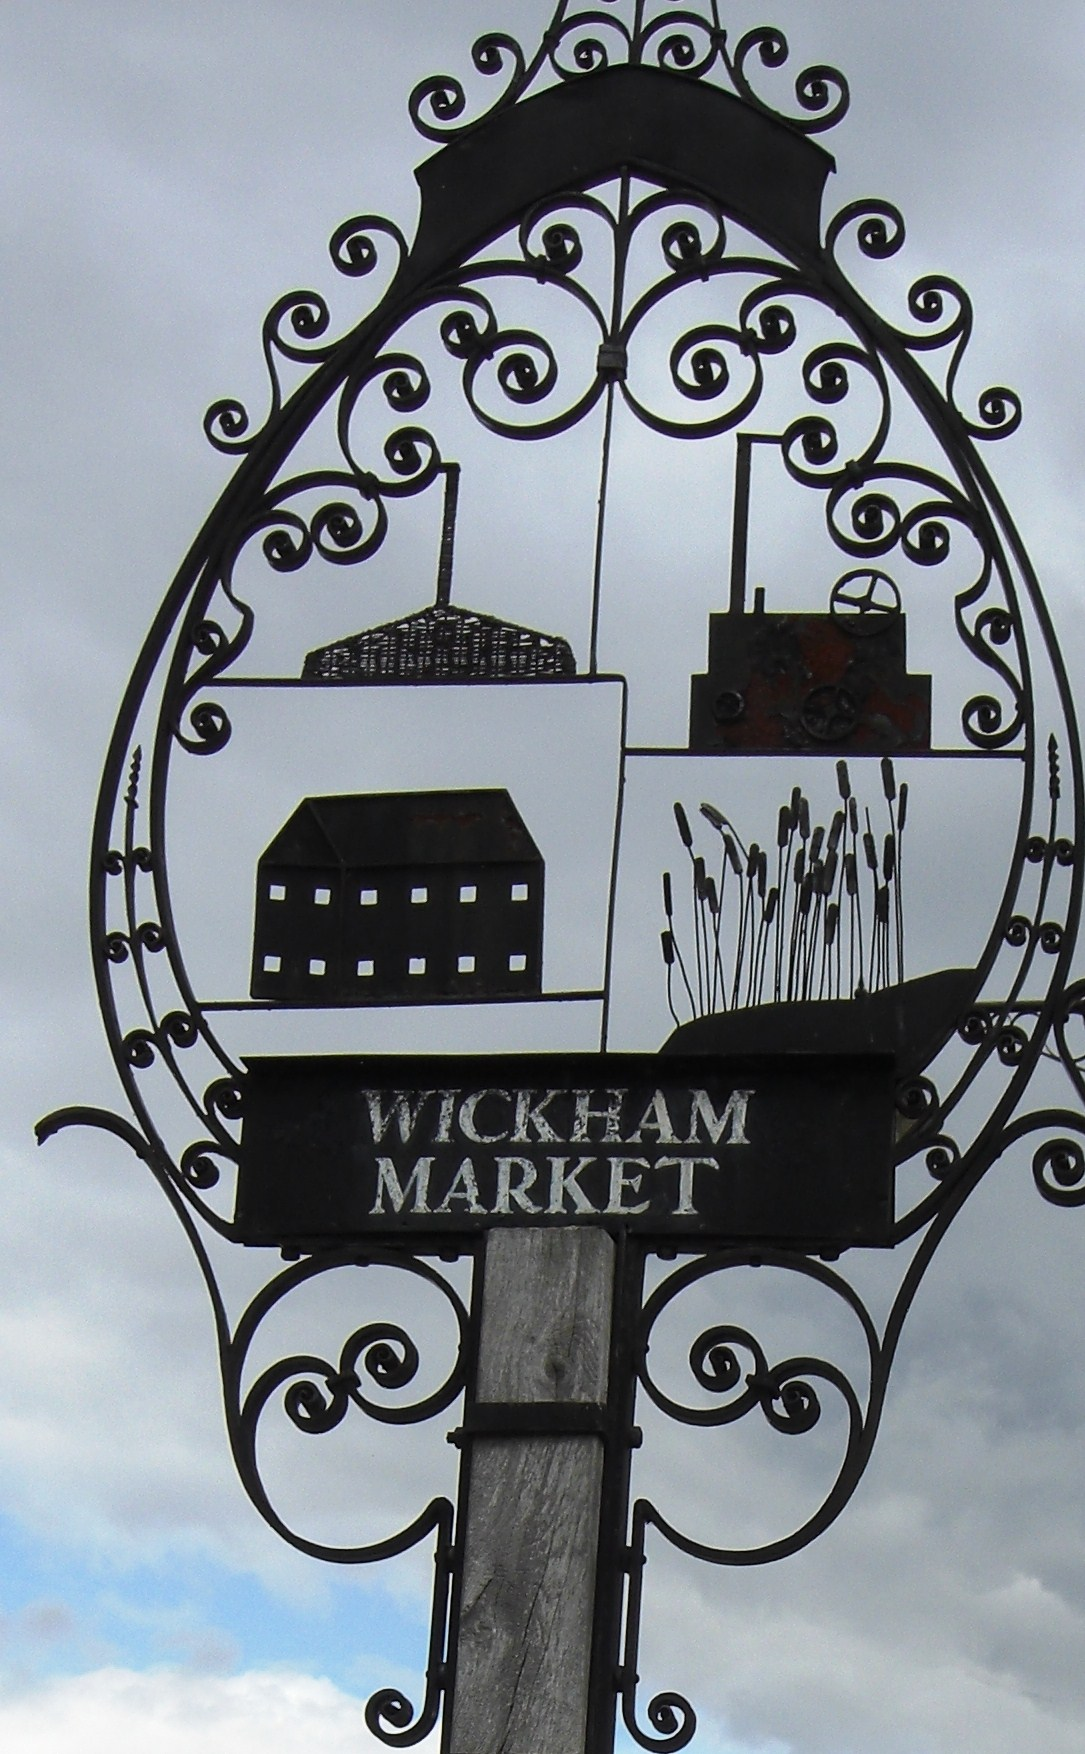 Wickham Market Parish Council